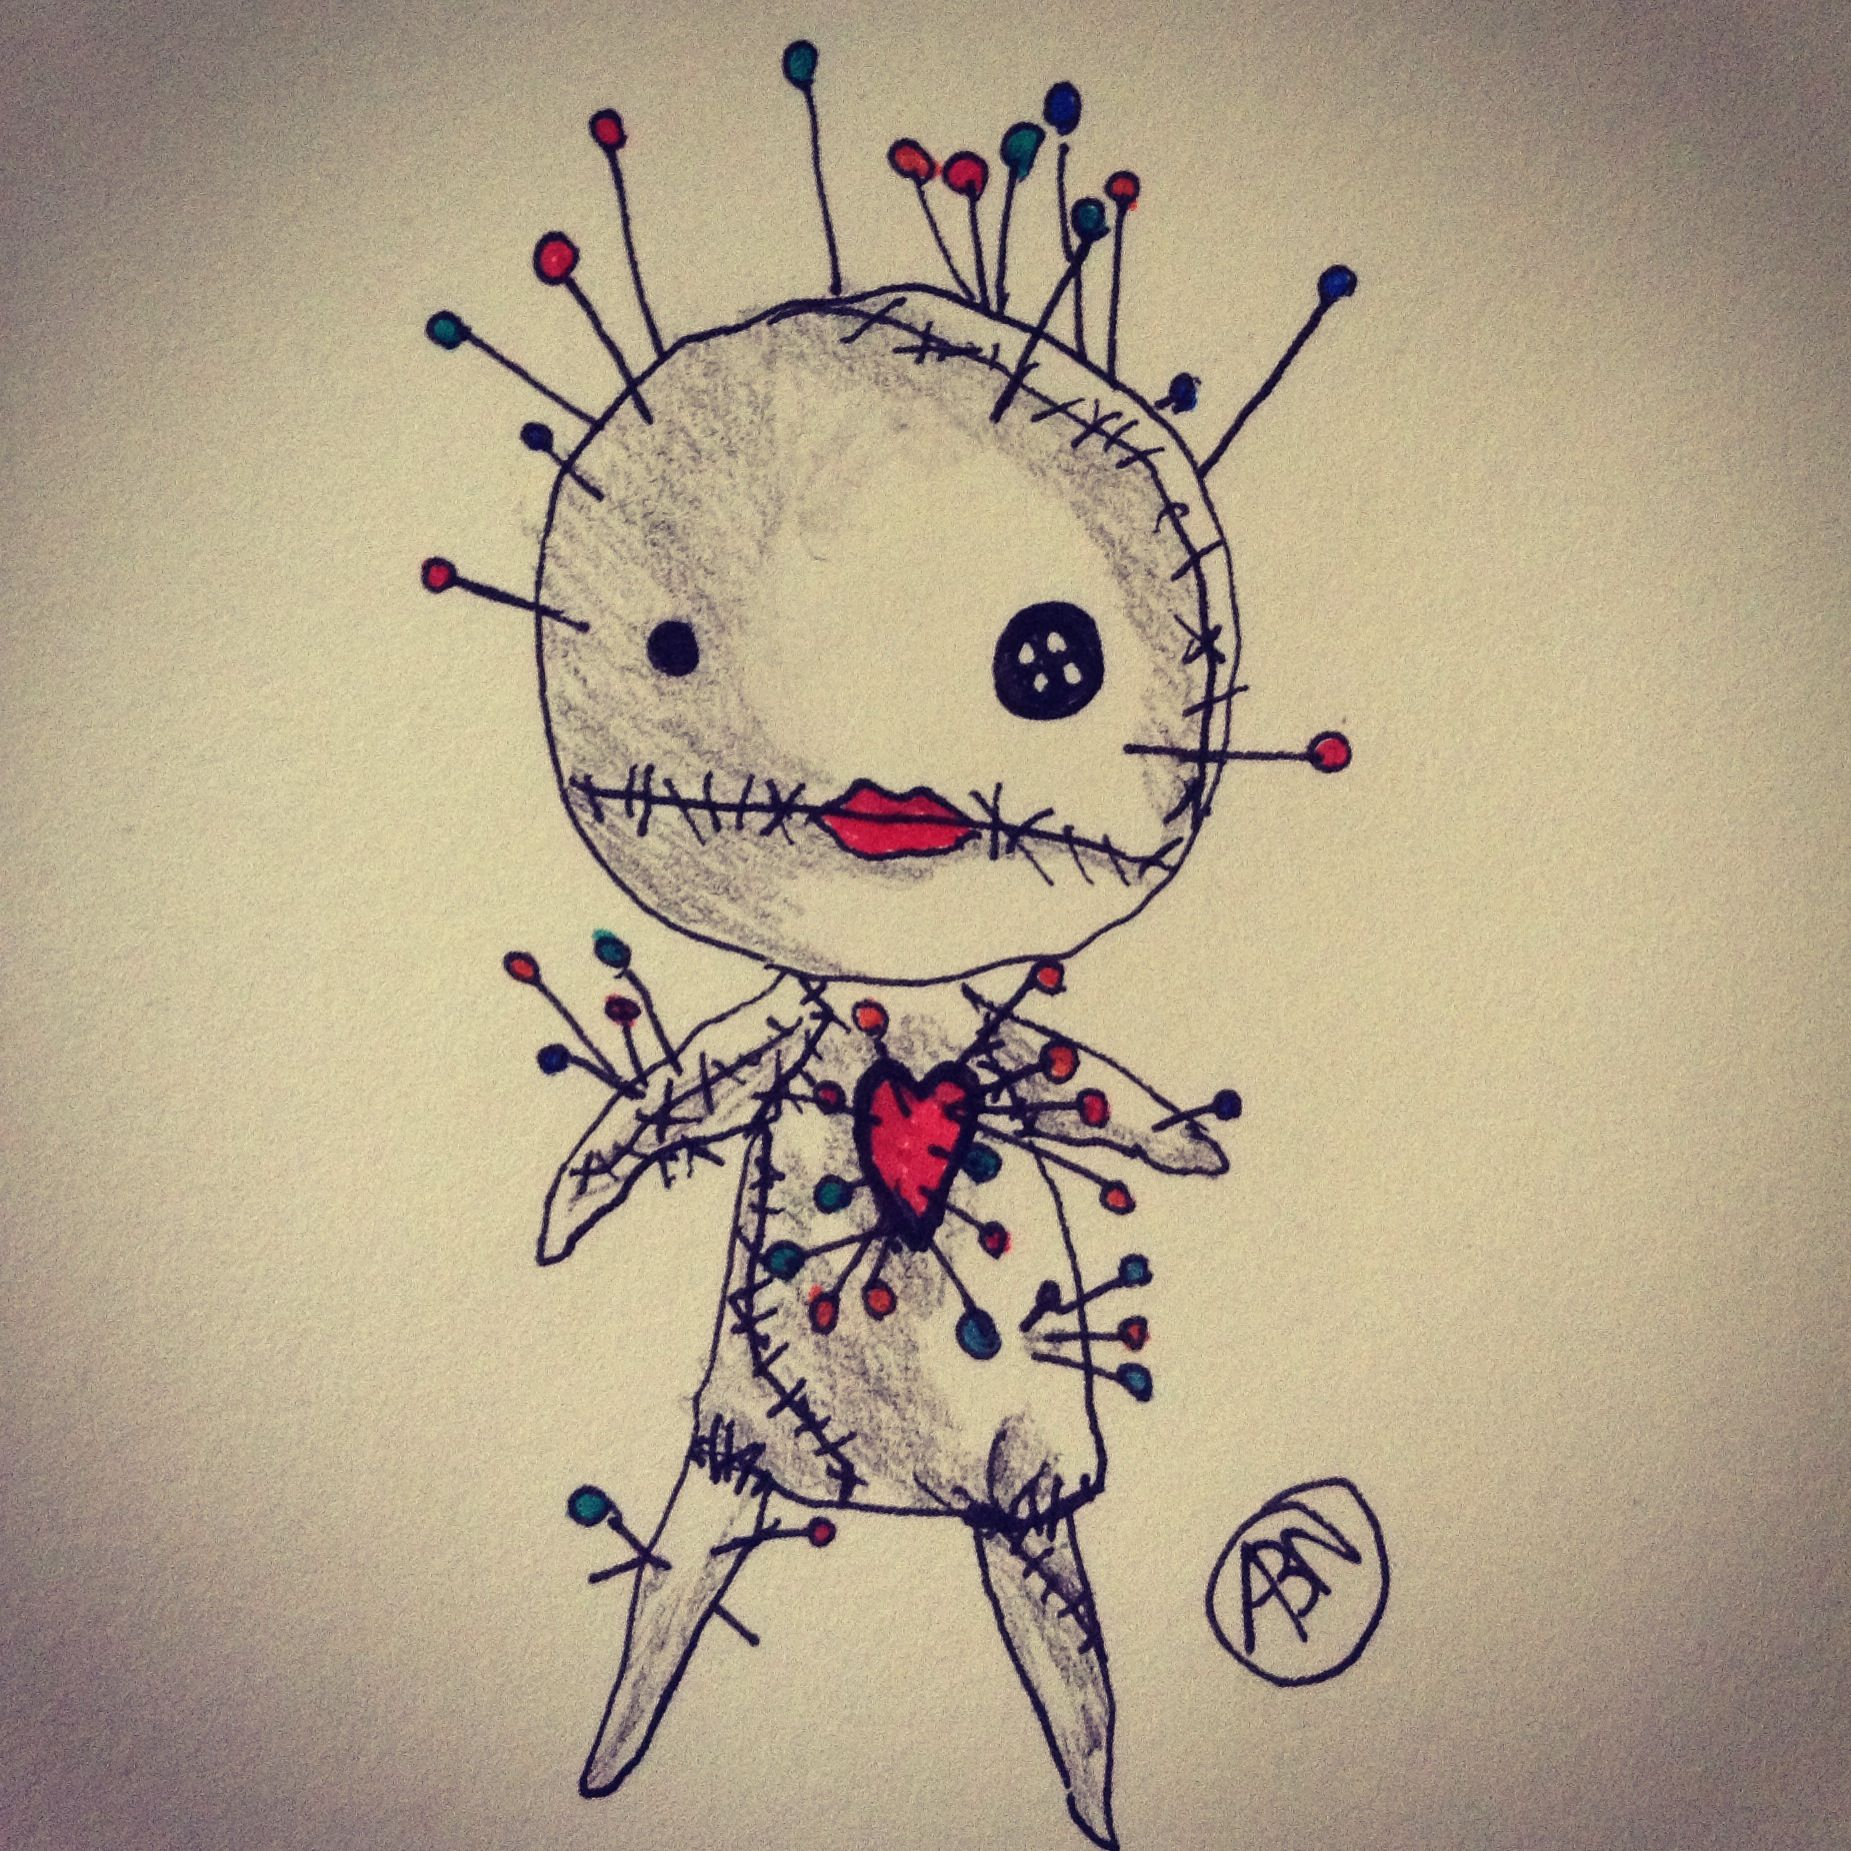 voodoo doll drawings - HD 1851×1851